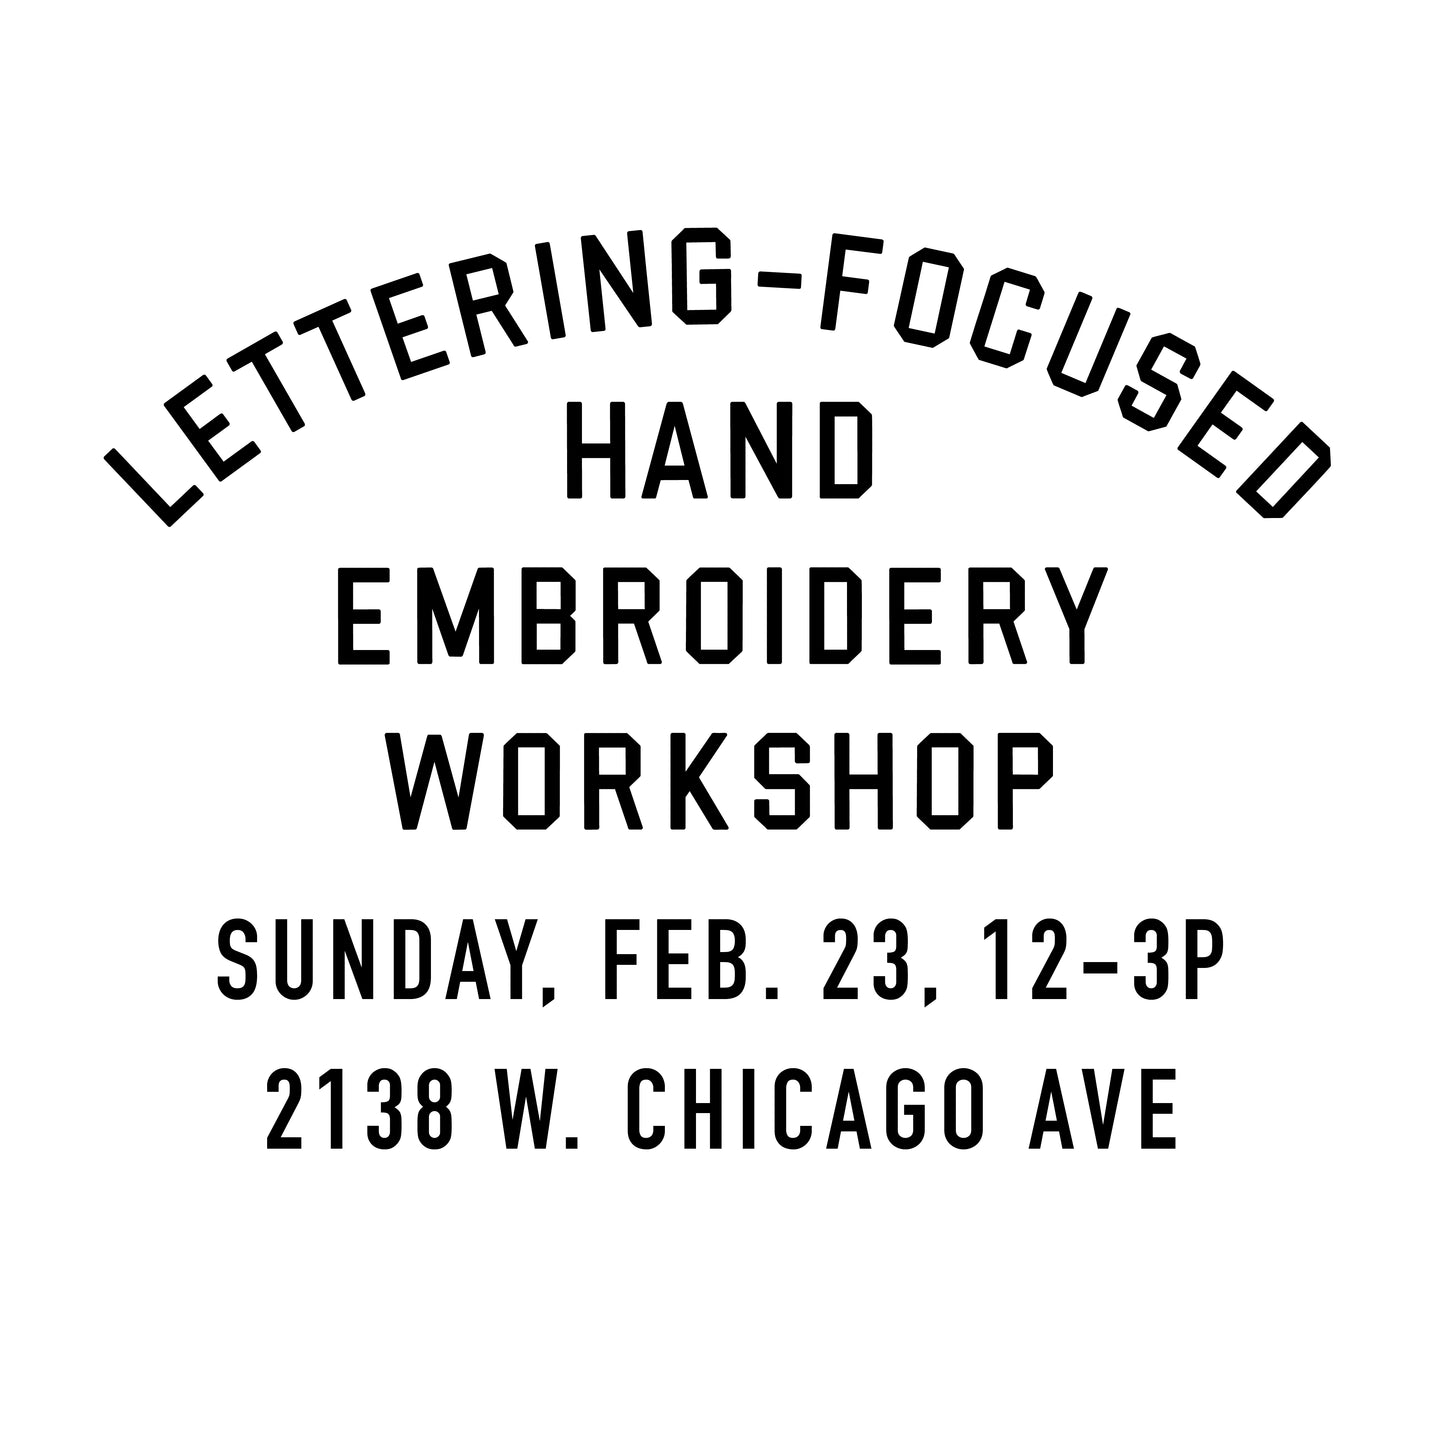 LETTERING-FOCUSED HAND EMBROIDERY WORKSHOP 2/23/20